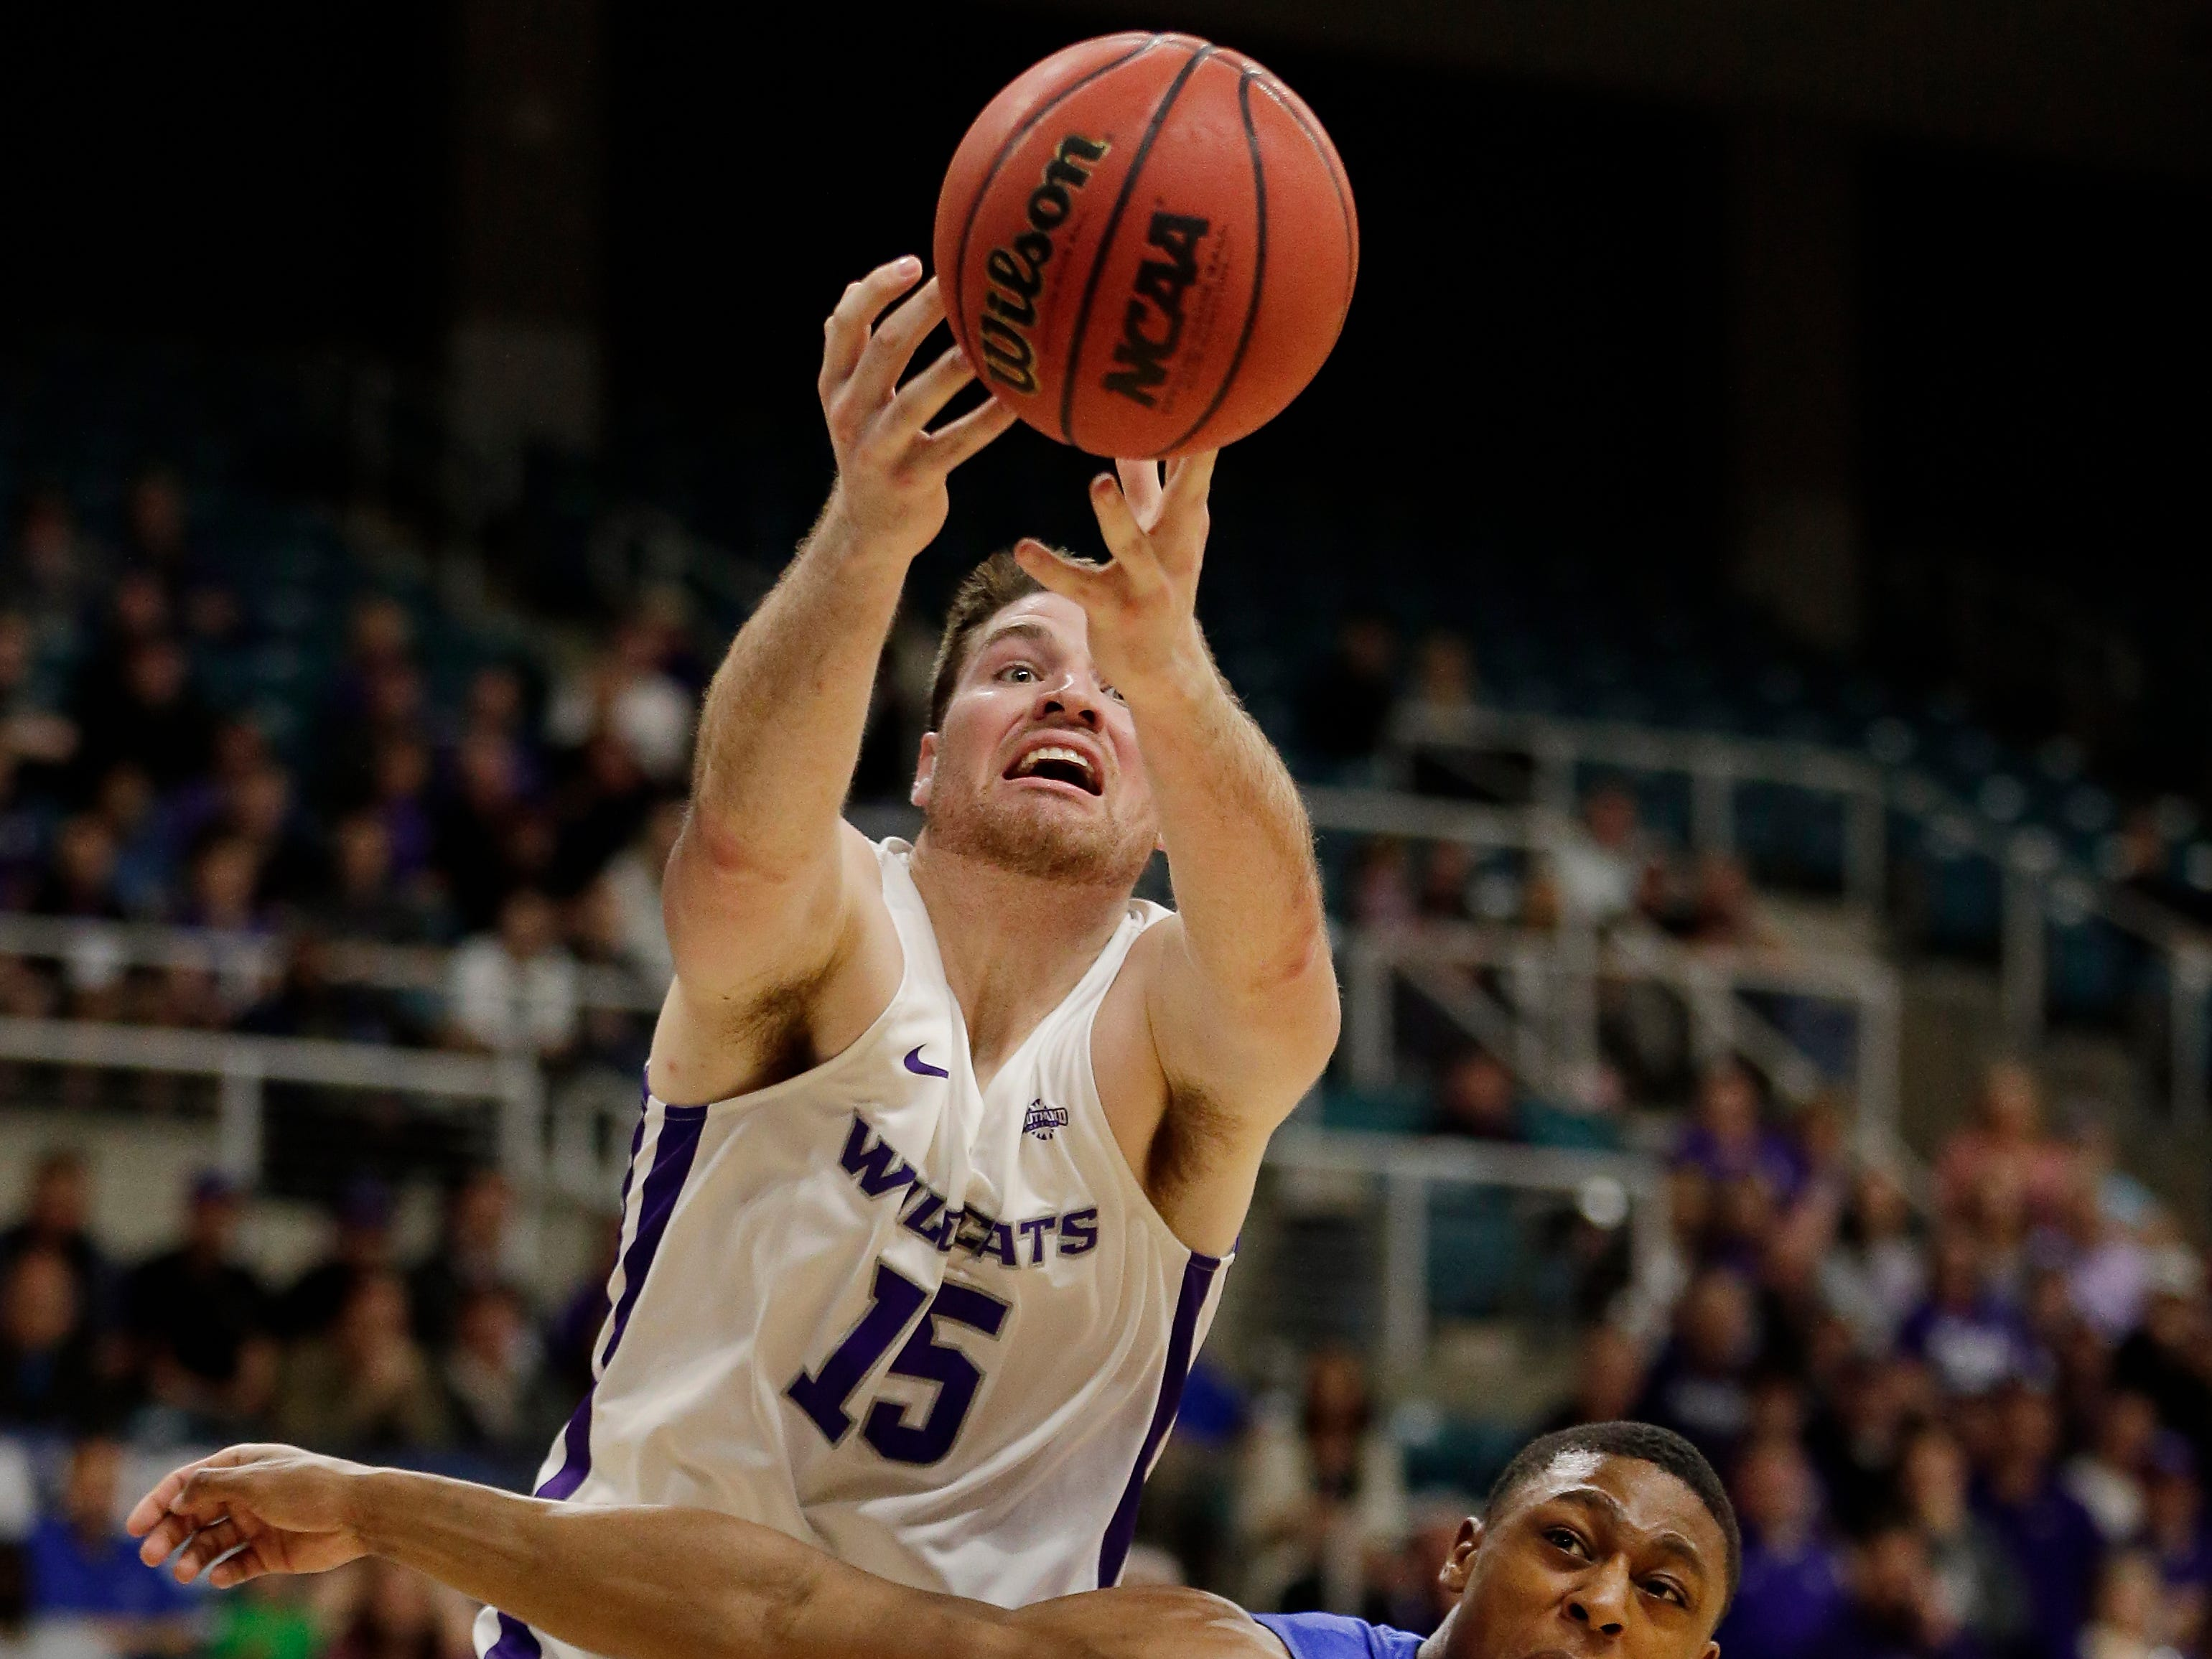 Abilene Christian forward Hayden Farquhar (15) reaches for a rebound over New Orleans guard Larry Robinson III (20) during the first half of an NCAA college basketball game for the Southland Conference men's tournament title Saturday, March 16, 2019, in Katy, Texas.